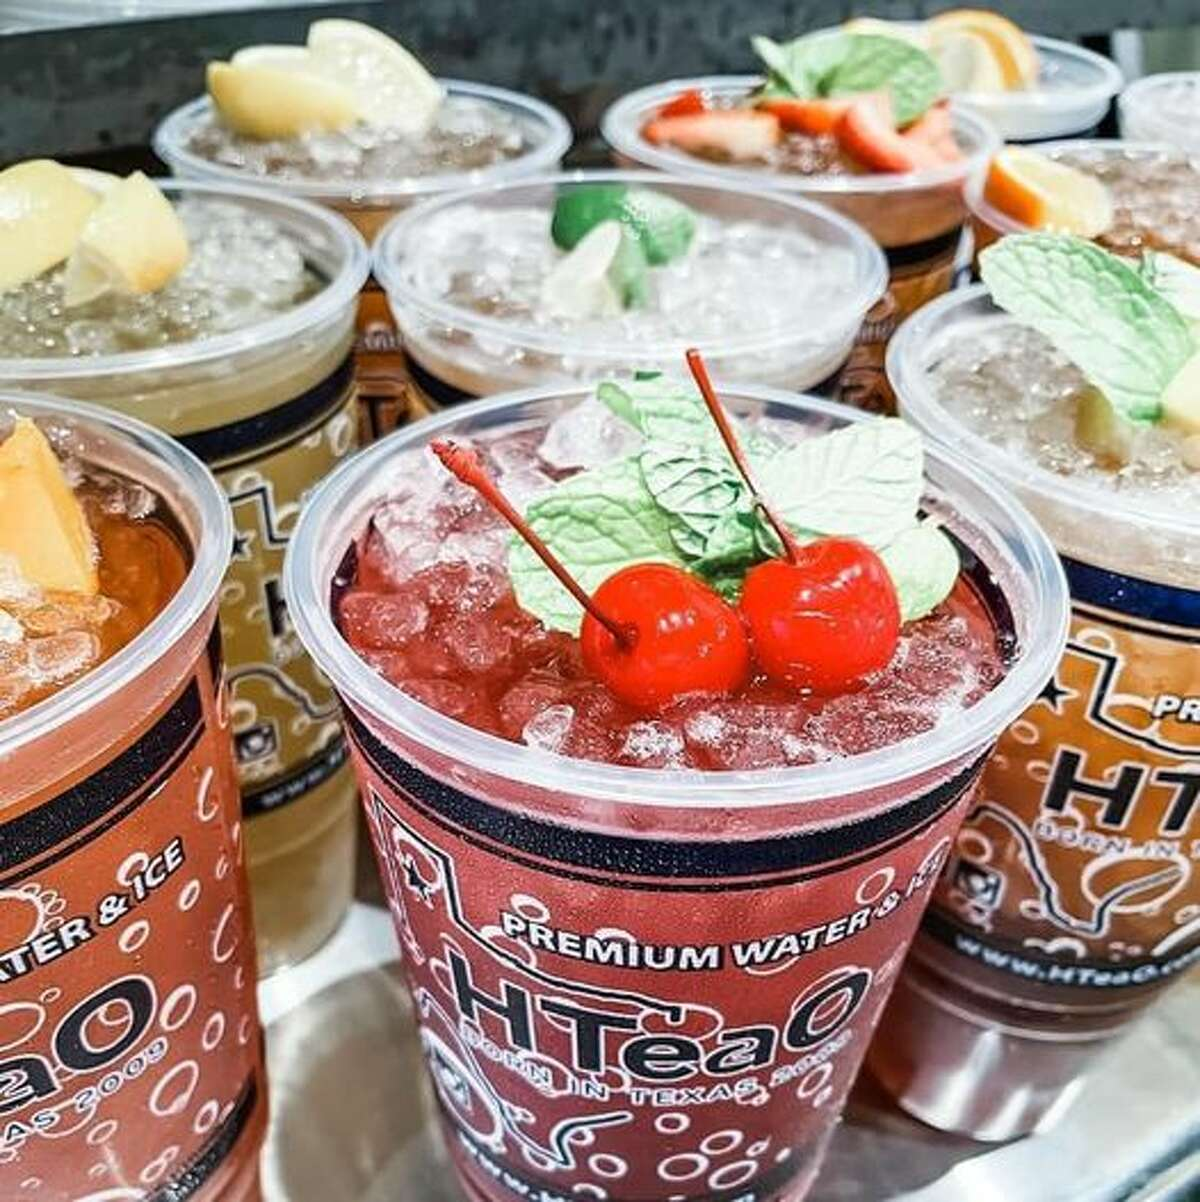 HTeaO is billed as an iced tea wonderland with 26 flavors.